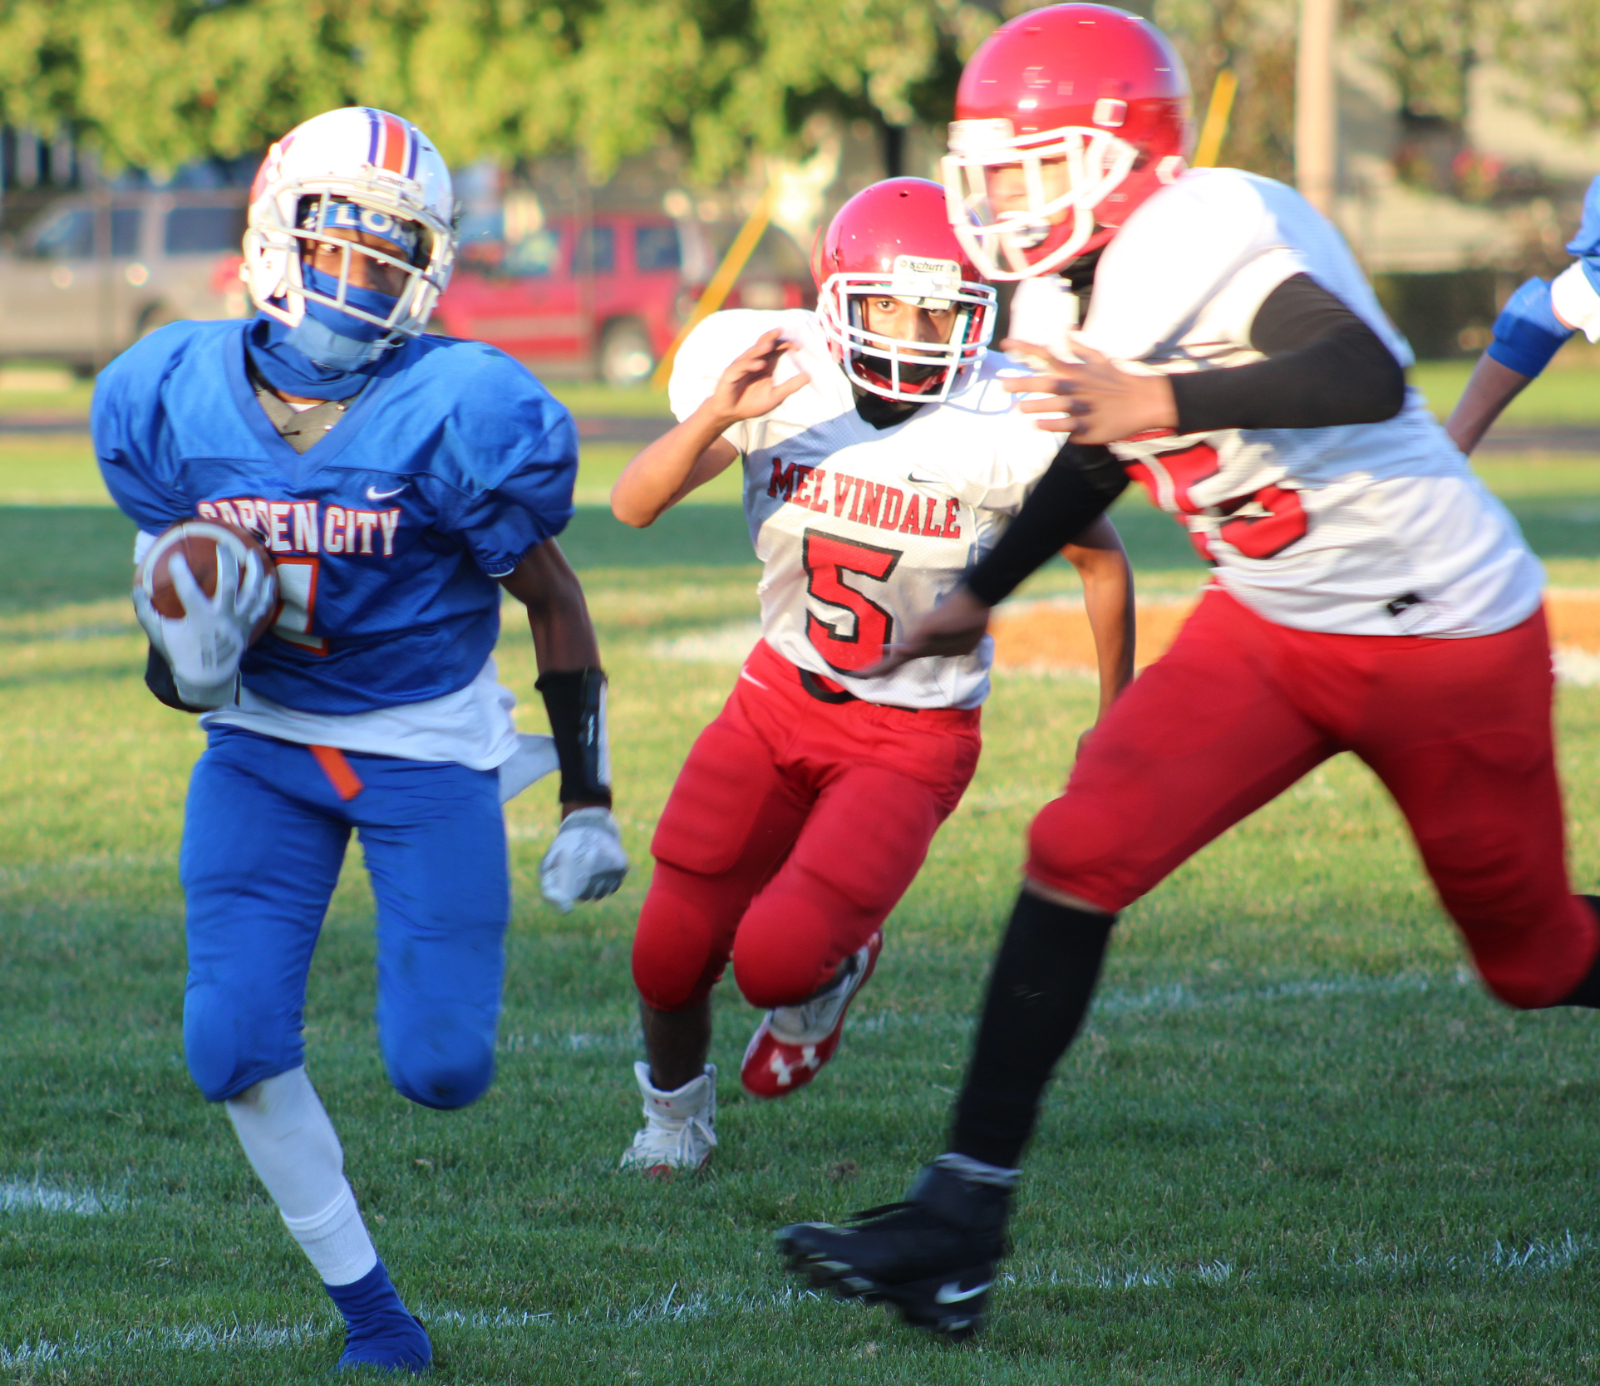 JV Football 10/08/20 vs Melvindale